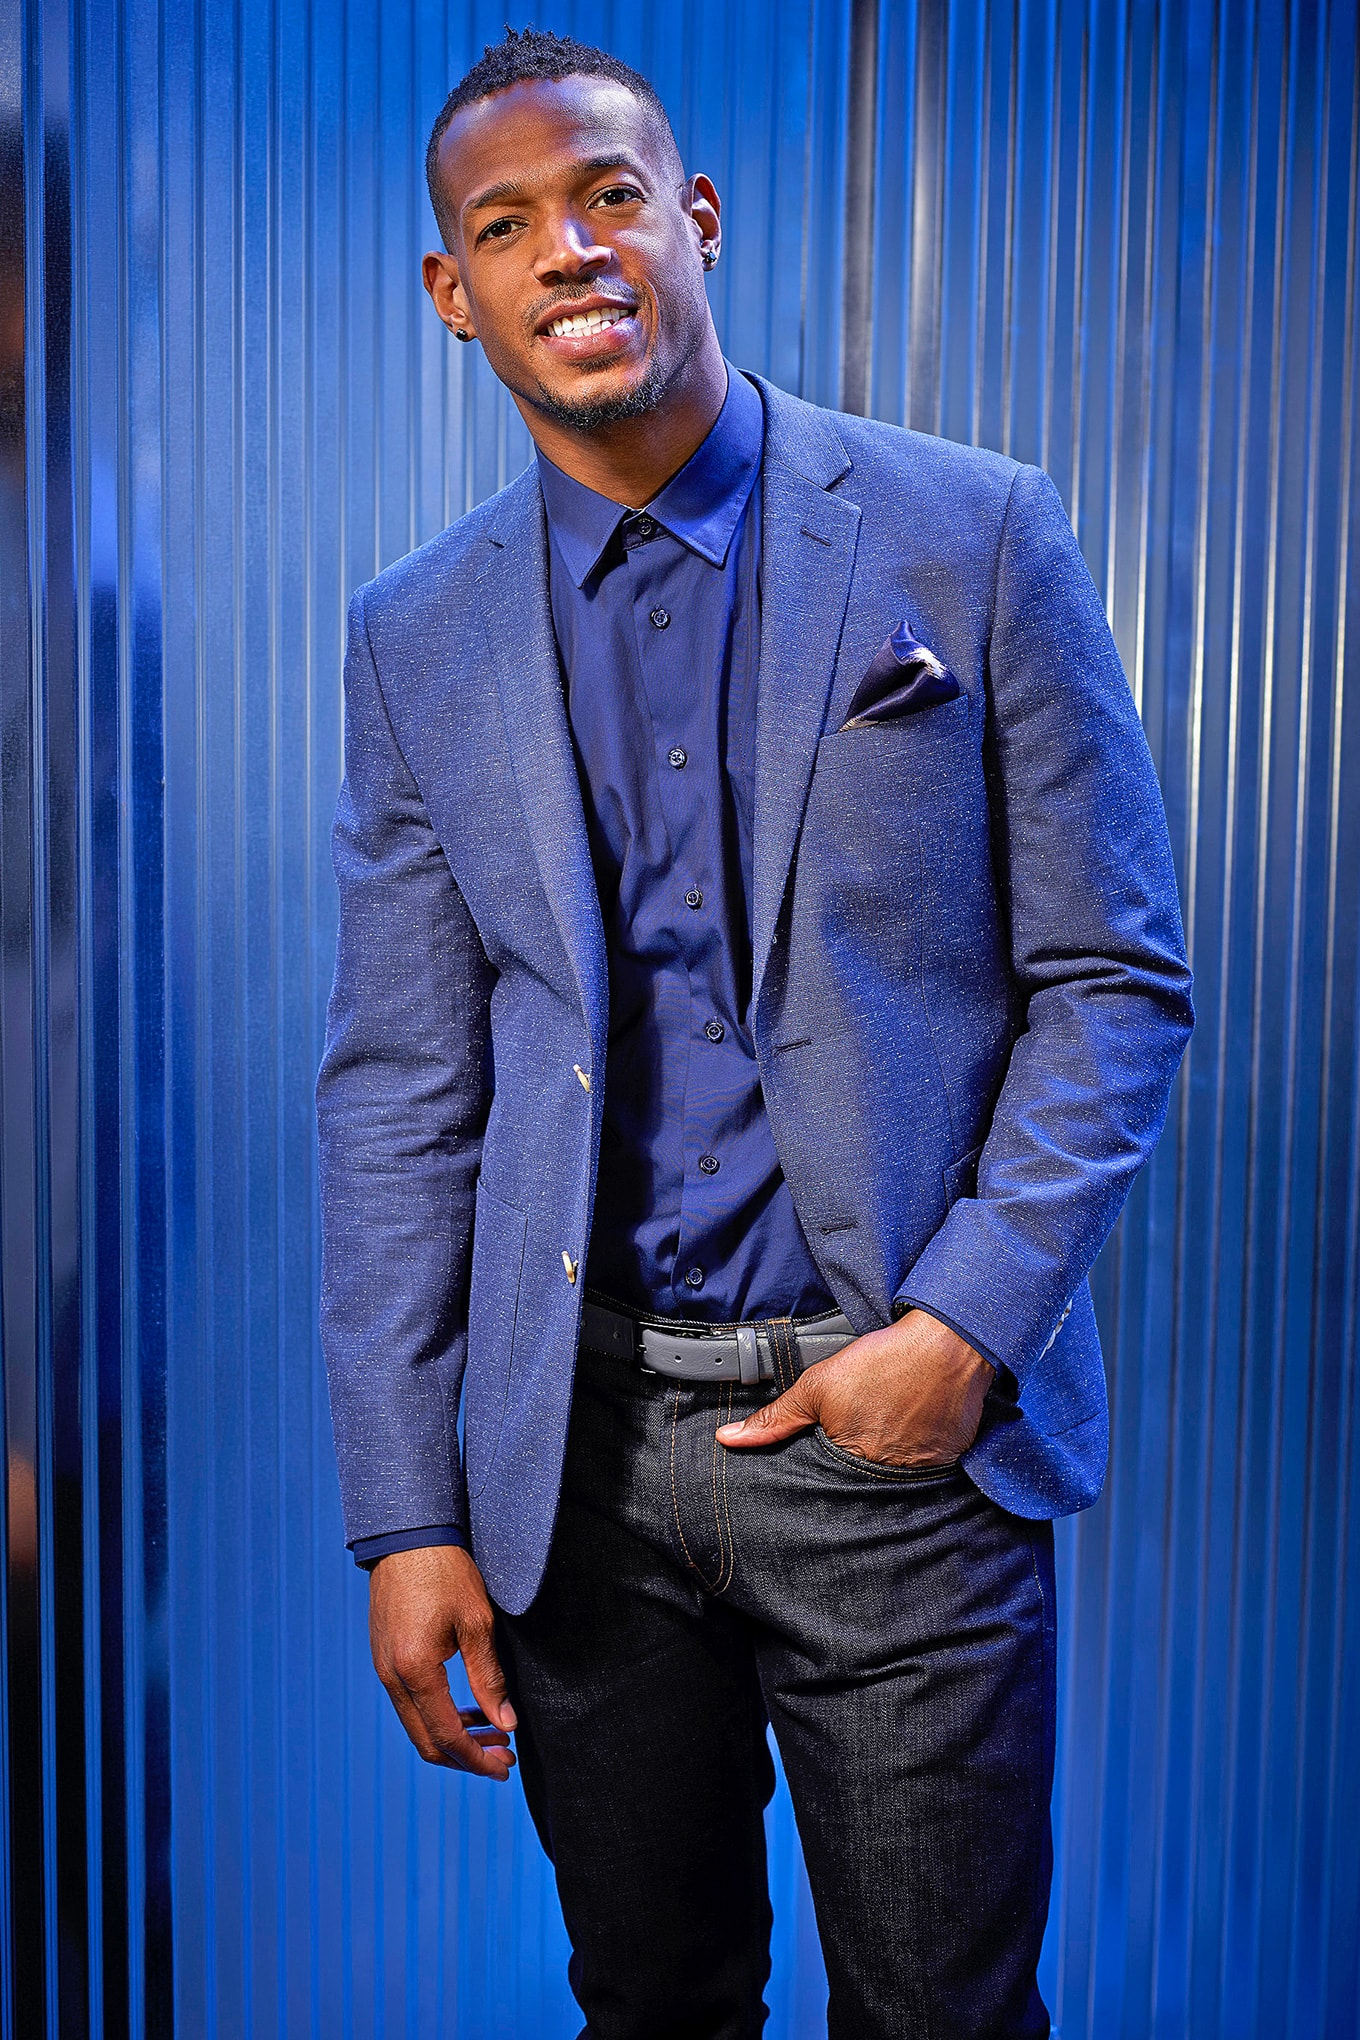 Marlon Wayans For mobile